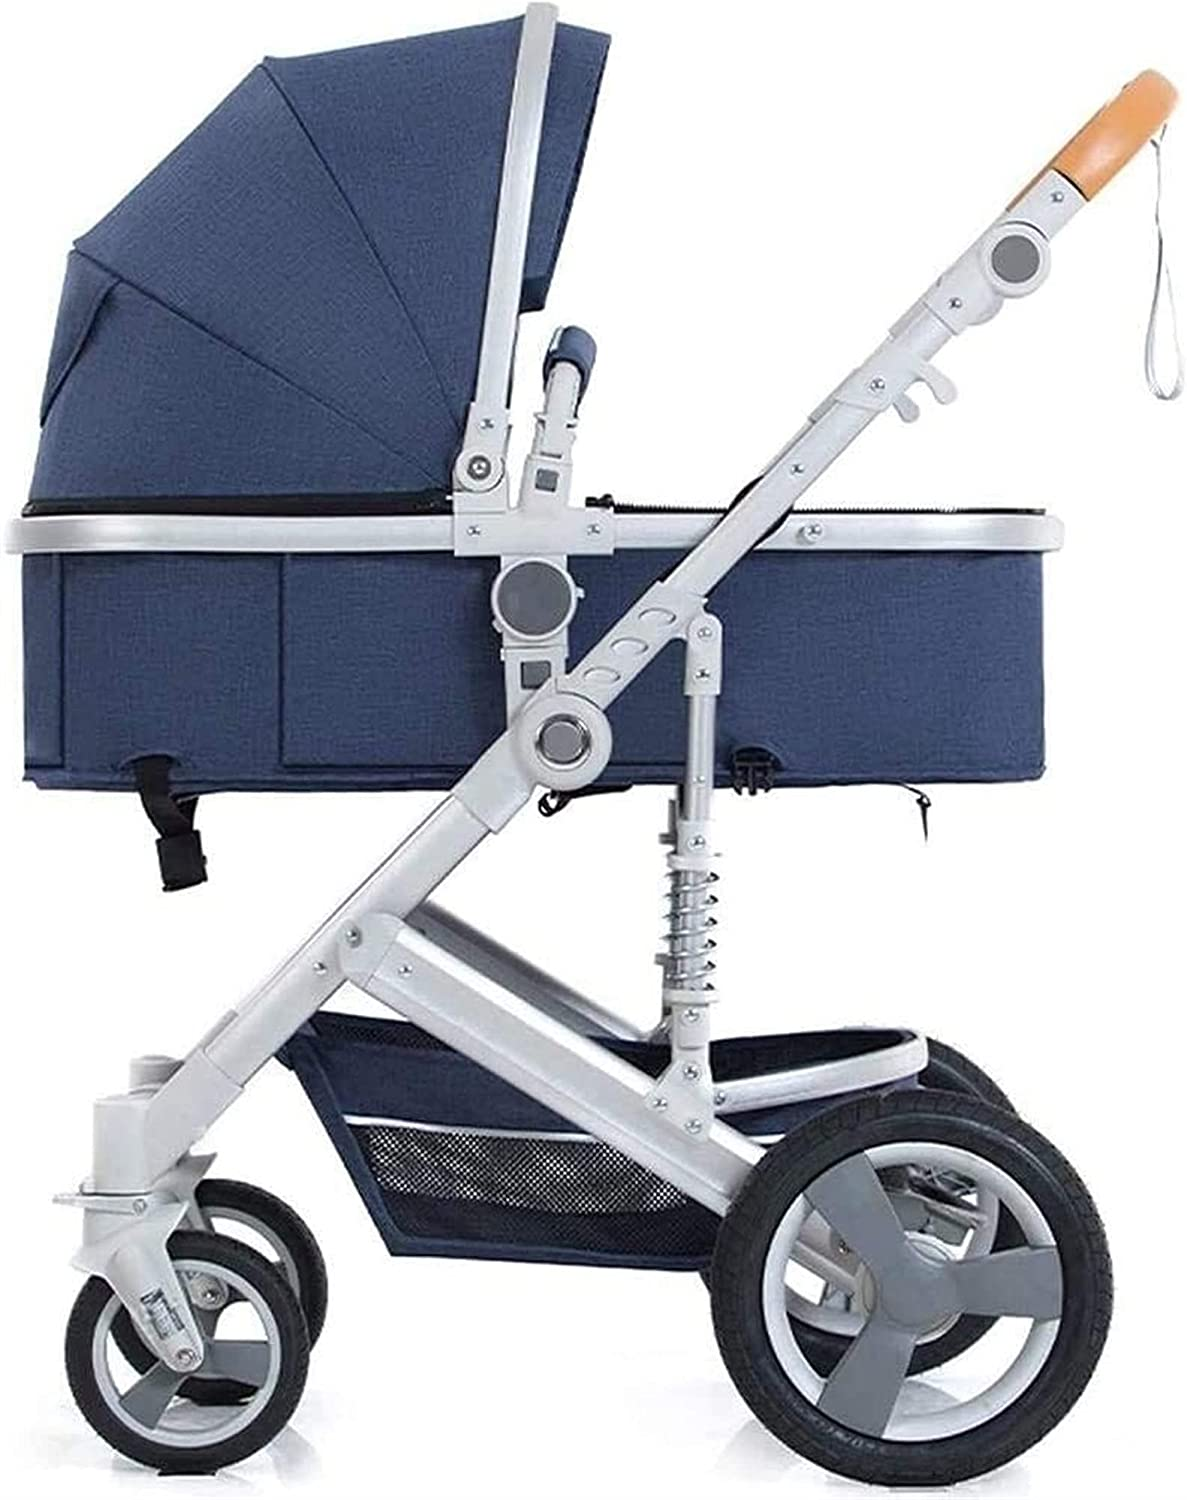 YZPTD Fold Jogging Stroller with Compact Outlet ☆ Free Shipping Anti- Umbrella Our shop OFFers the best service